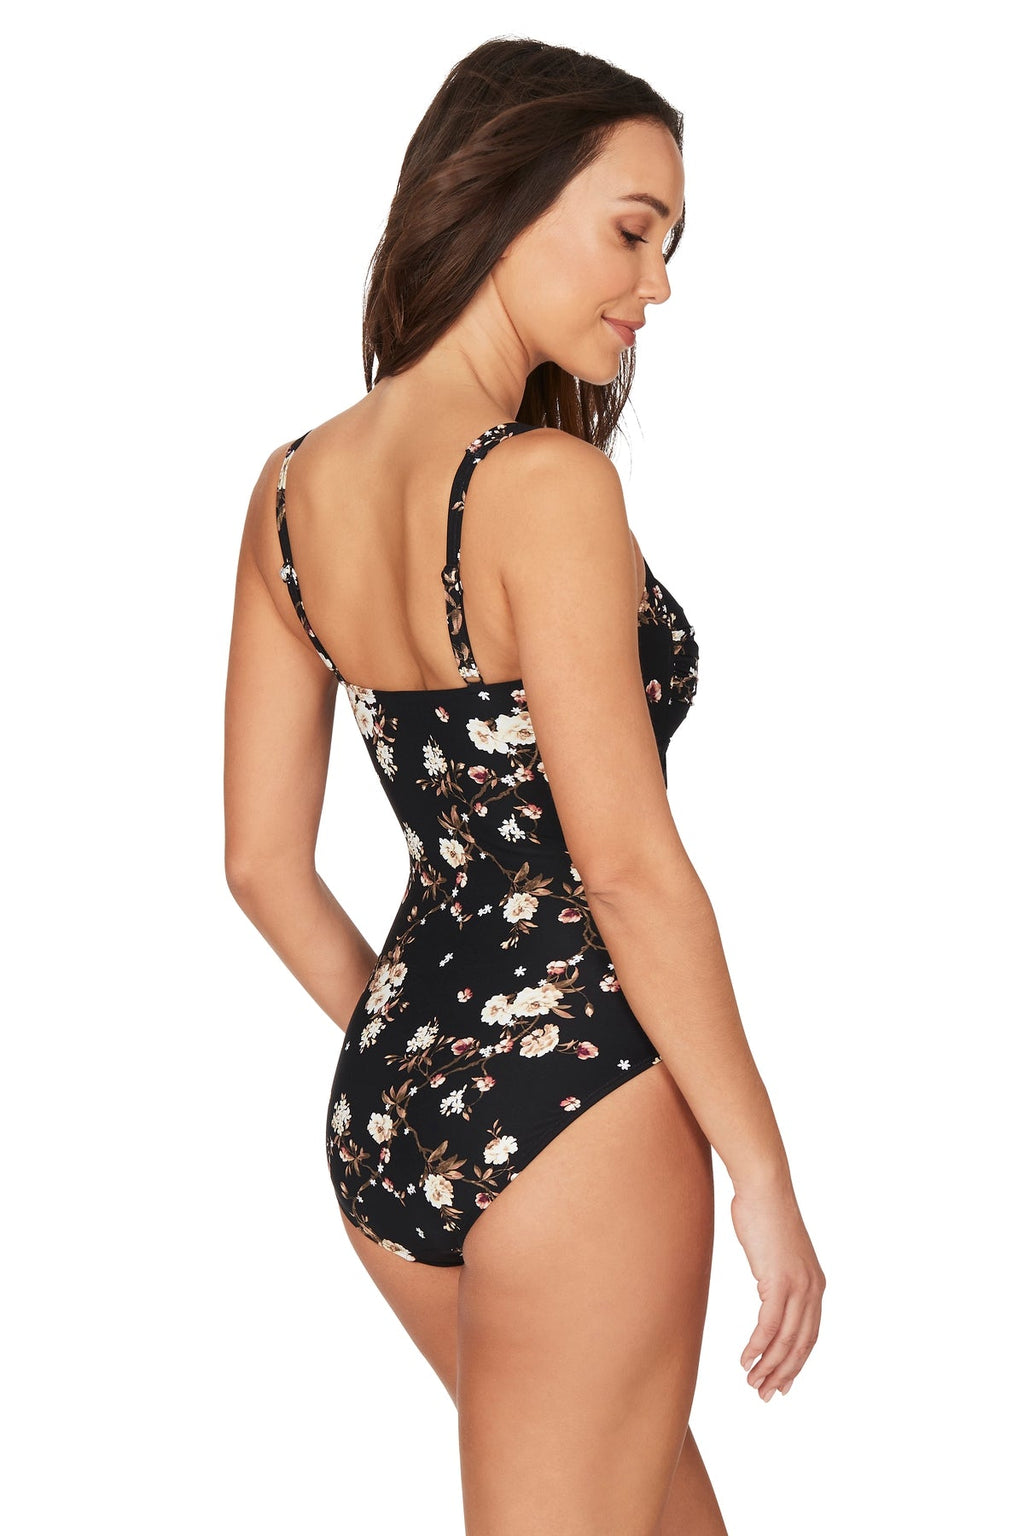 Vine & Dine Black Twist Front Design Tummy Control One Piece Swimsuit - Final Sale